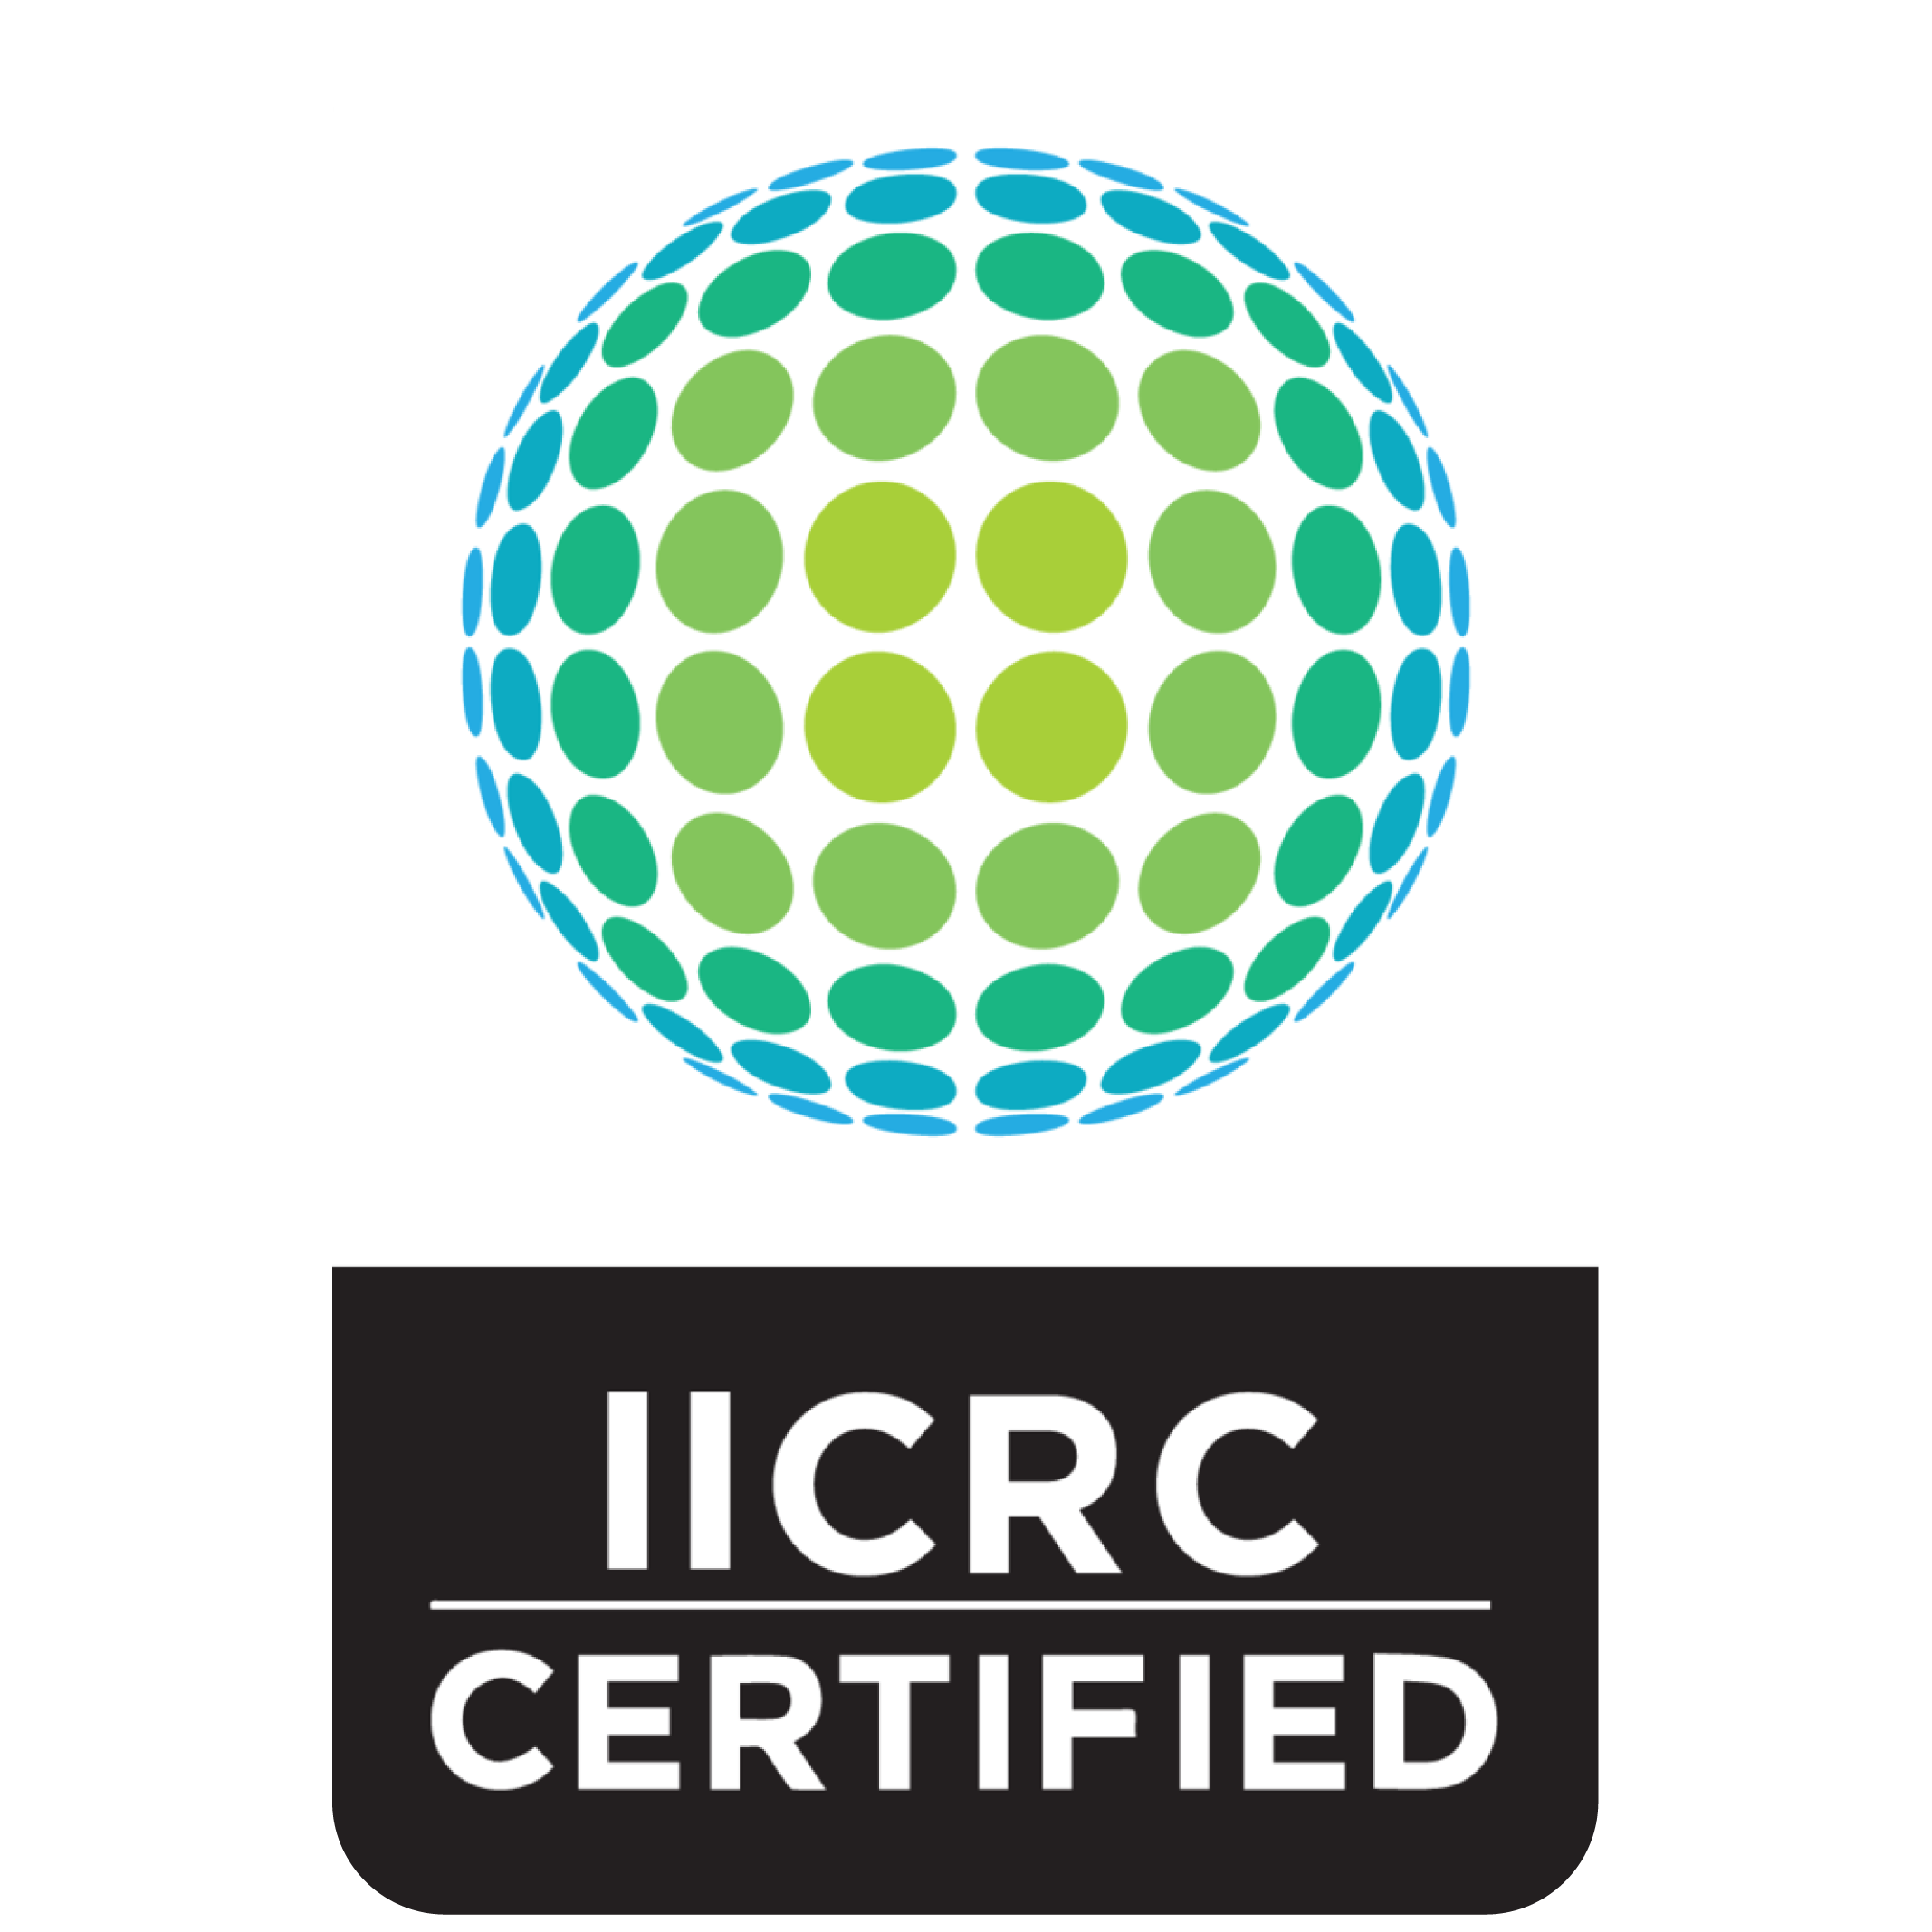 Iicrccertified Logo Resized